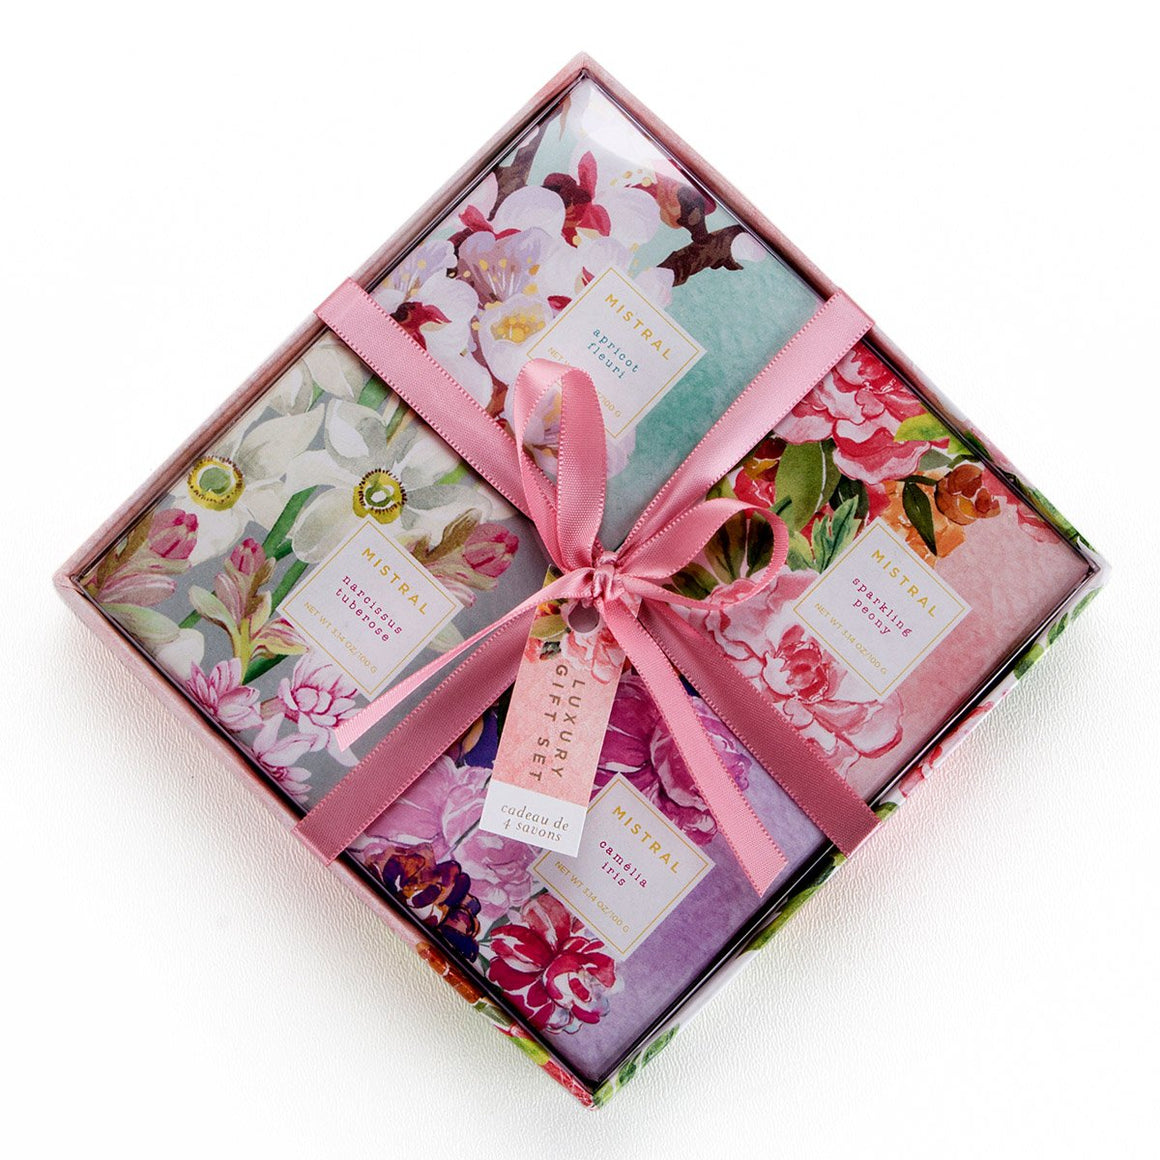 Exquisite Florals 4 Soap Gift Set